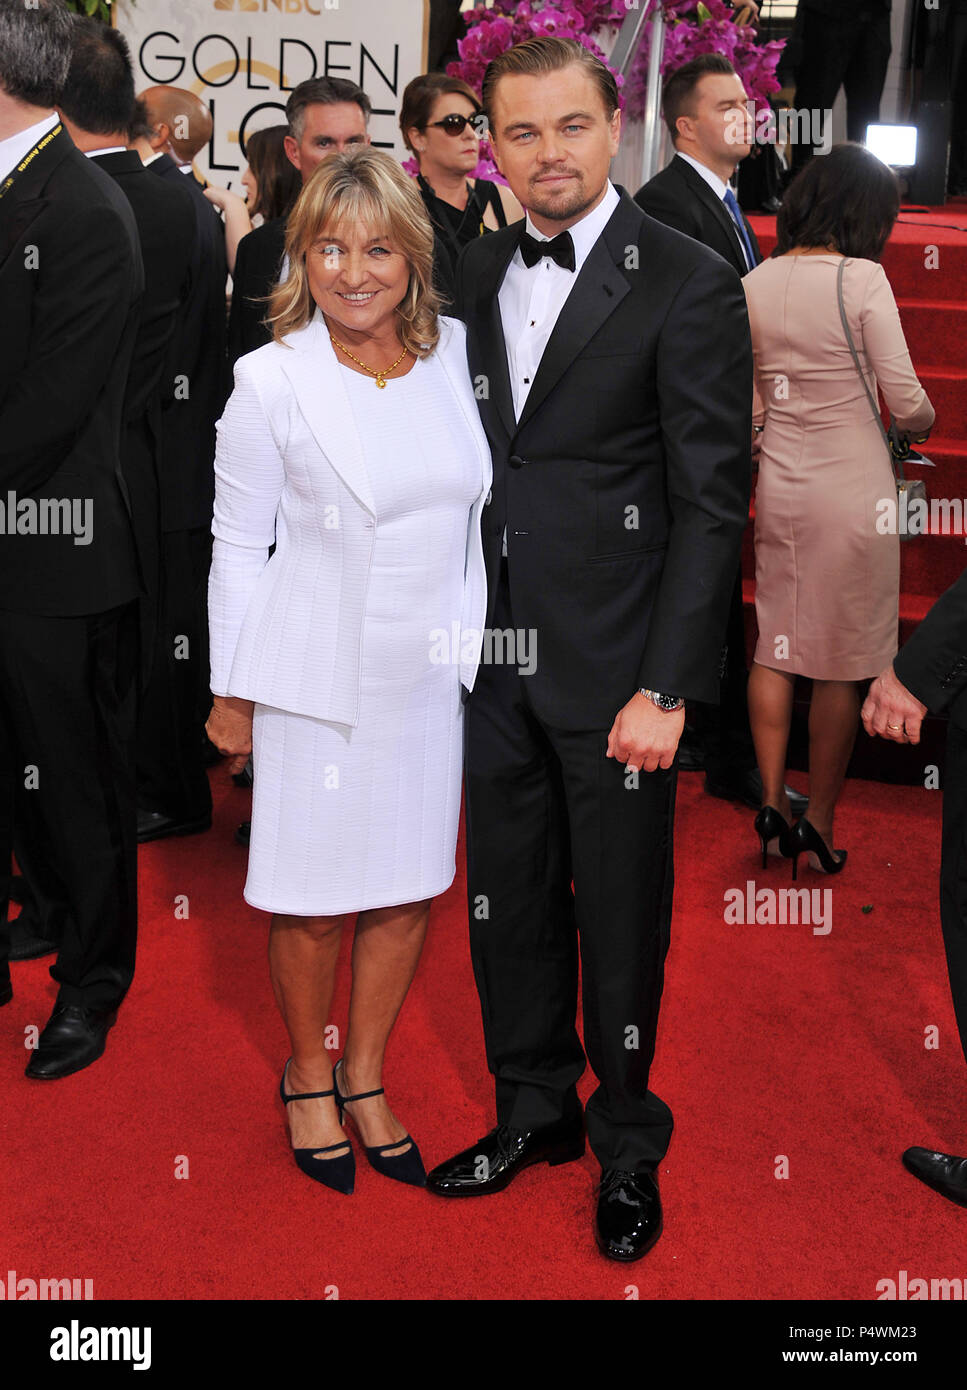 Leonardo Dicaprio And Mom At The 2014 Golden Globes Awards At The